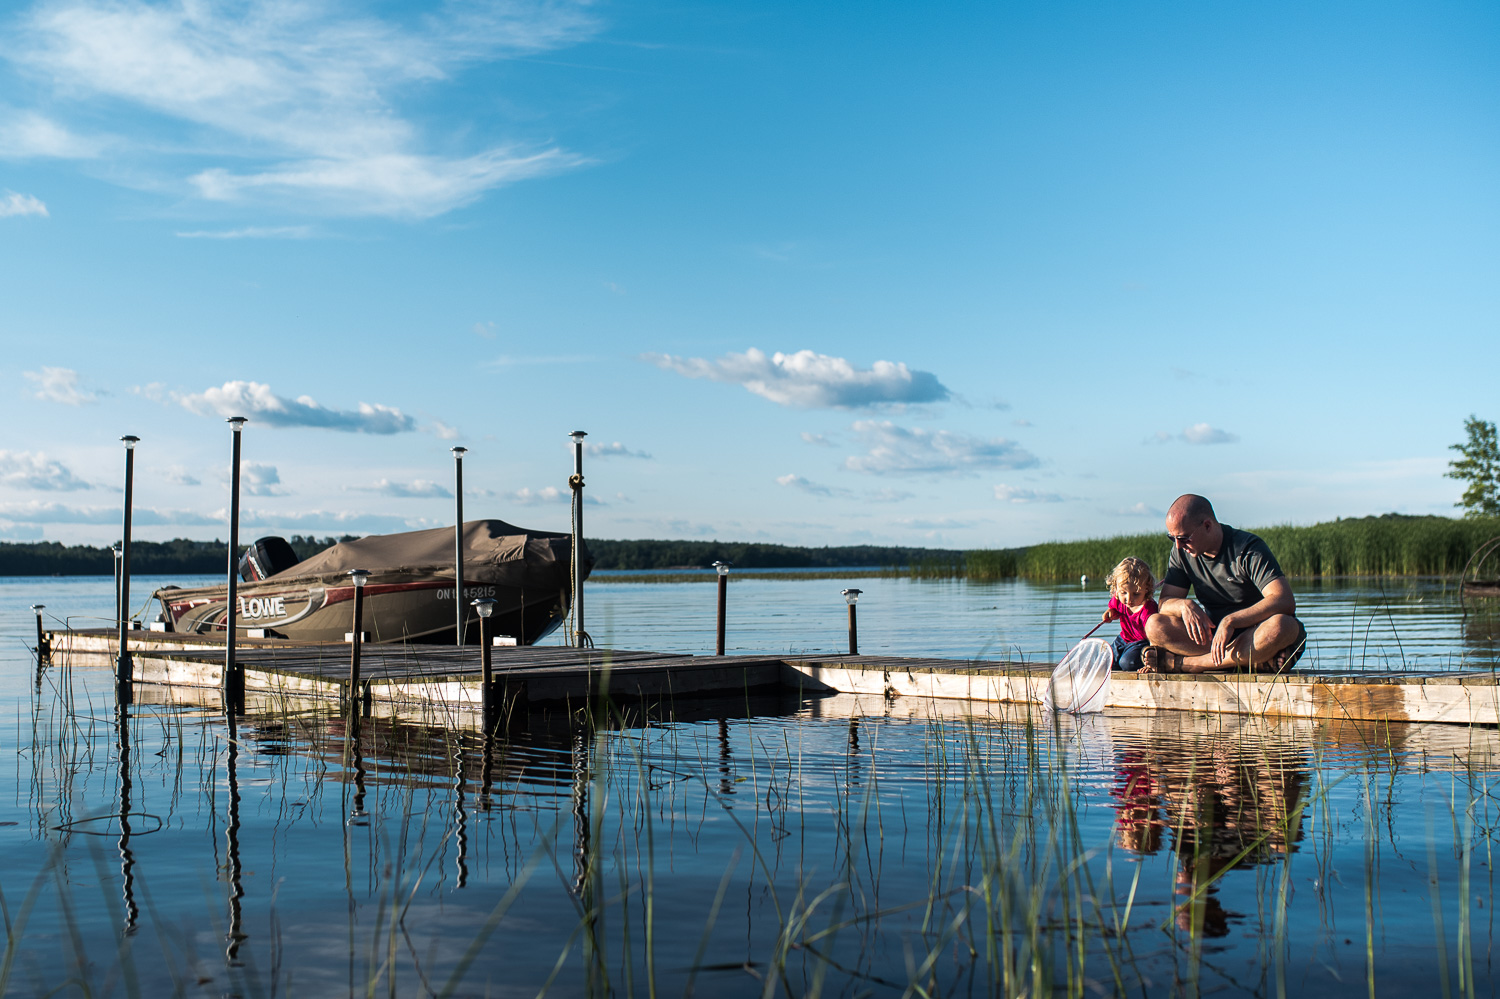 Toddler girl and her dad sitting on a wooden dock in a lake with a boat and a fishing net trying to catch treasures in the lake. Blue Sky and fluffy white clouds reflected in the blue lake water.